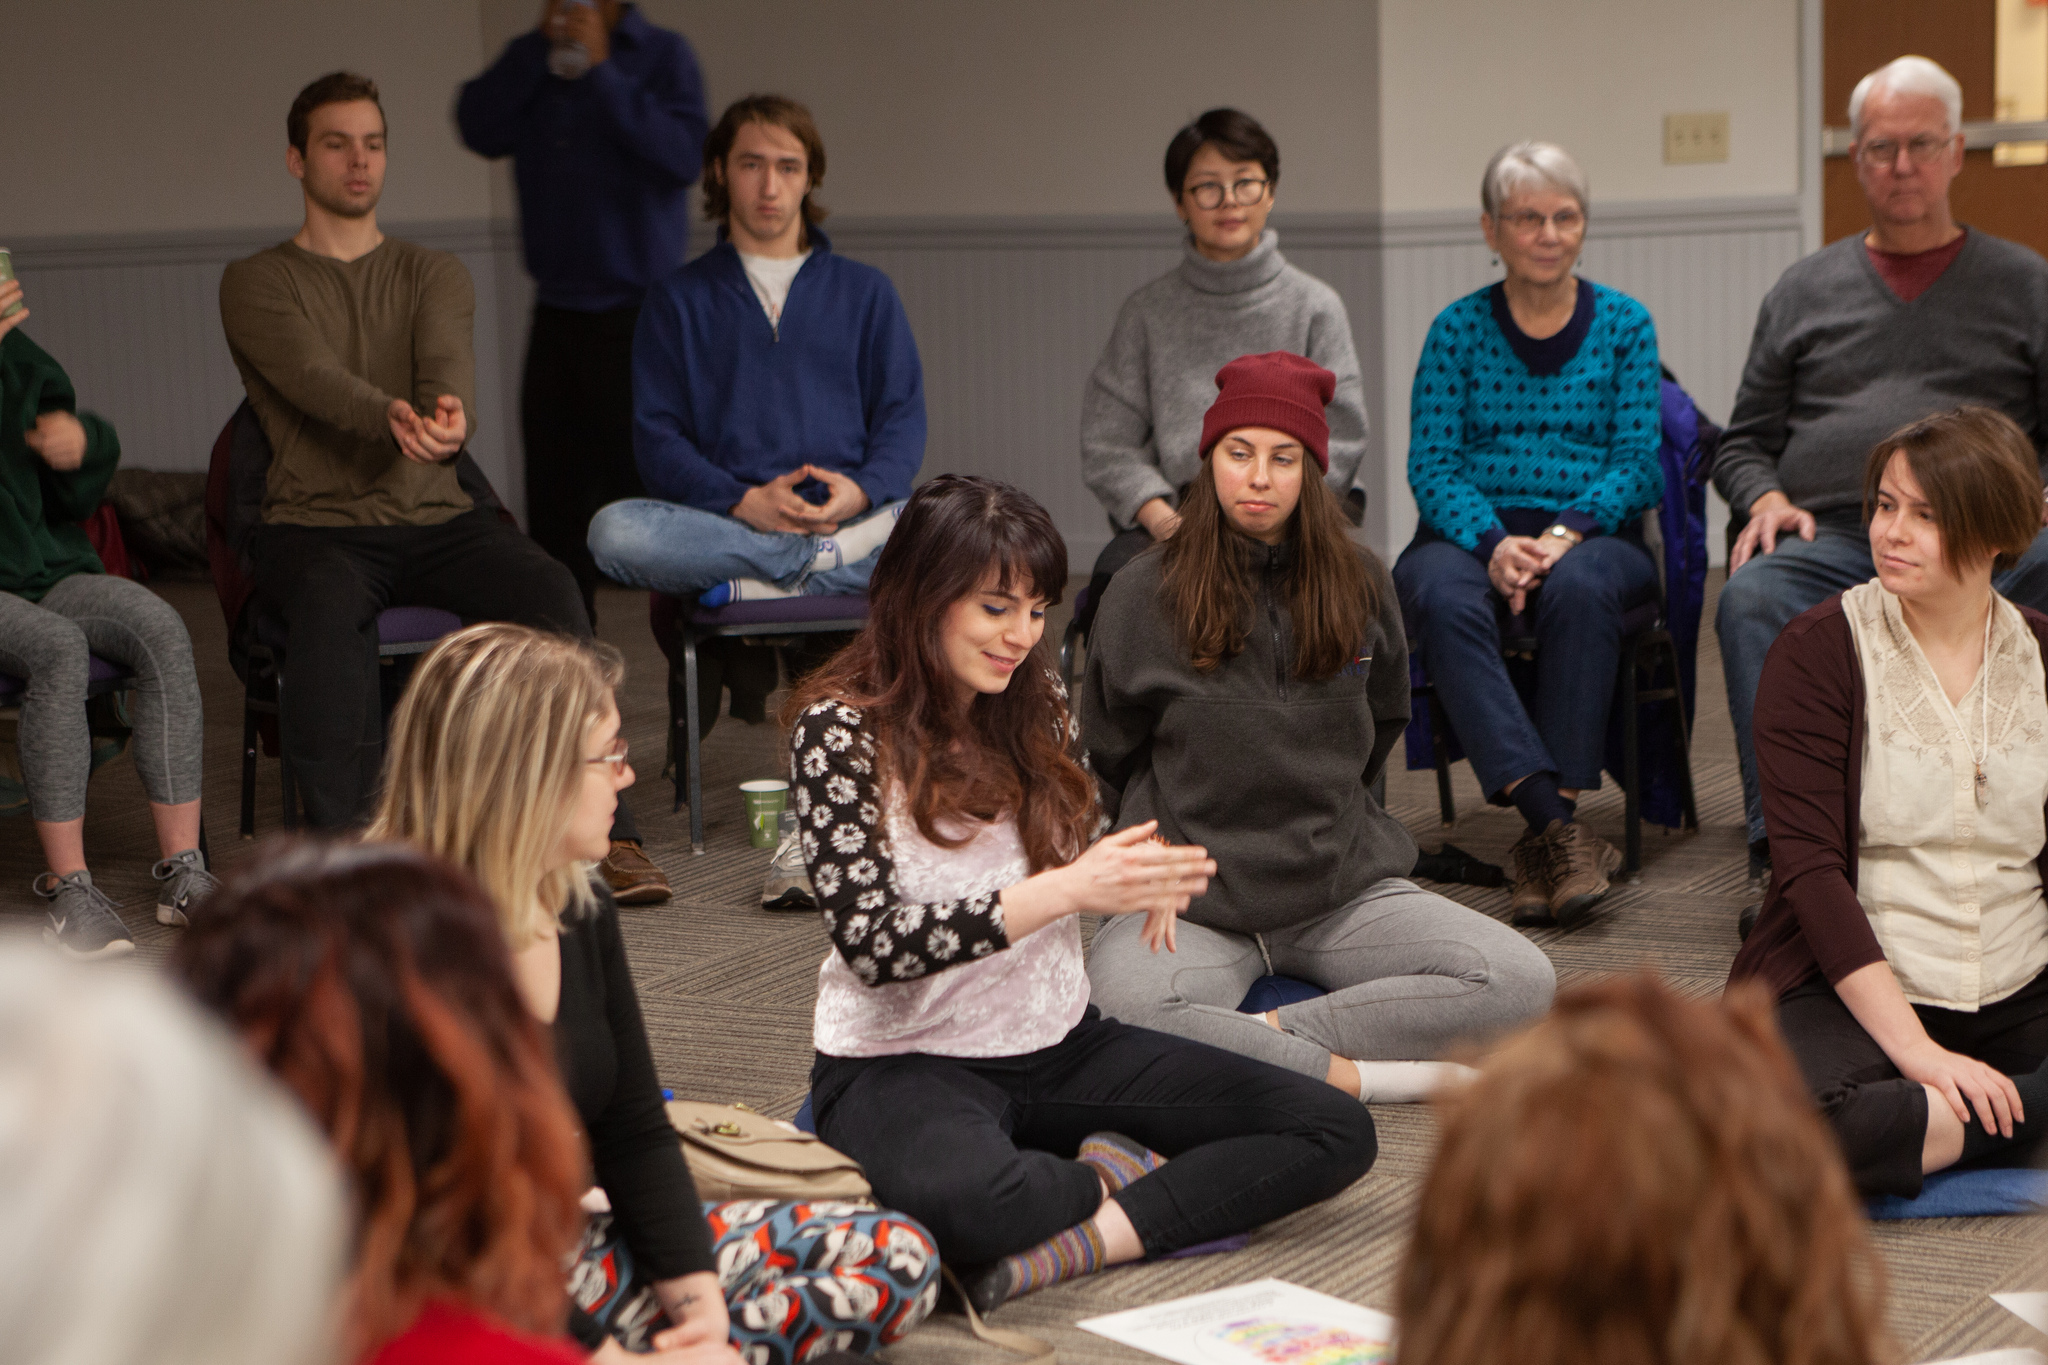 Image of JMU student demonstrating practices at the Mindfulness Experience Retreat.